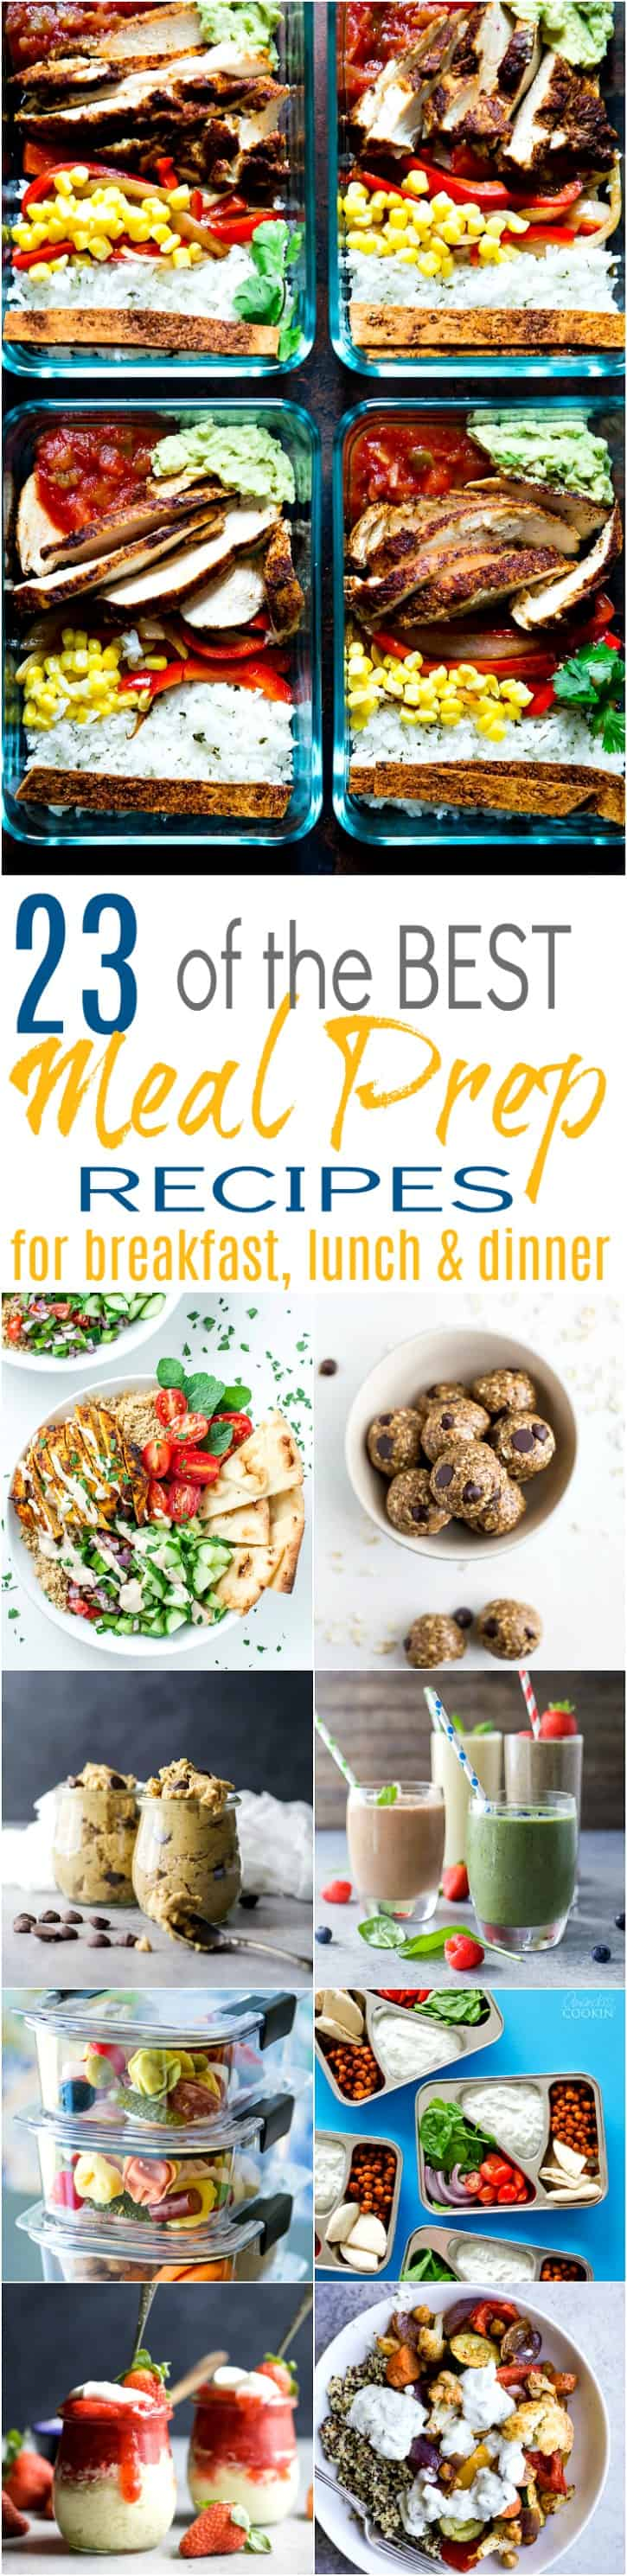 23 Of The Best Meal Prep Recipes For Breakfast Lunch Dinner Easy